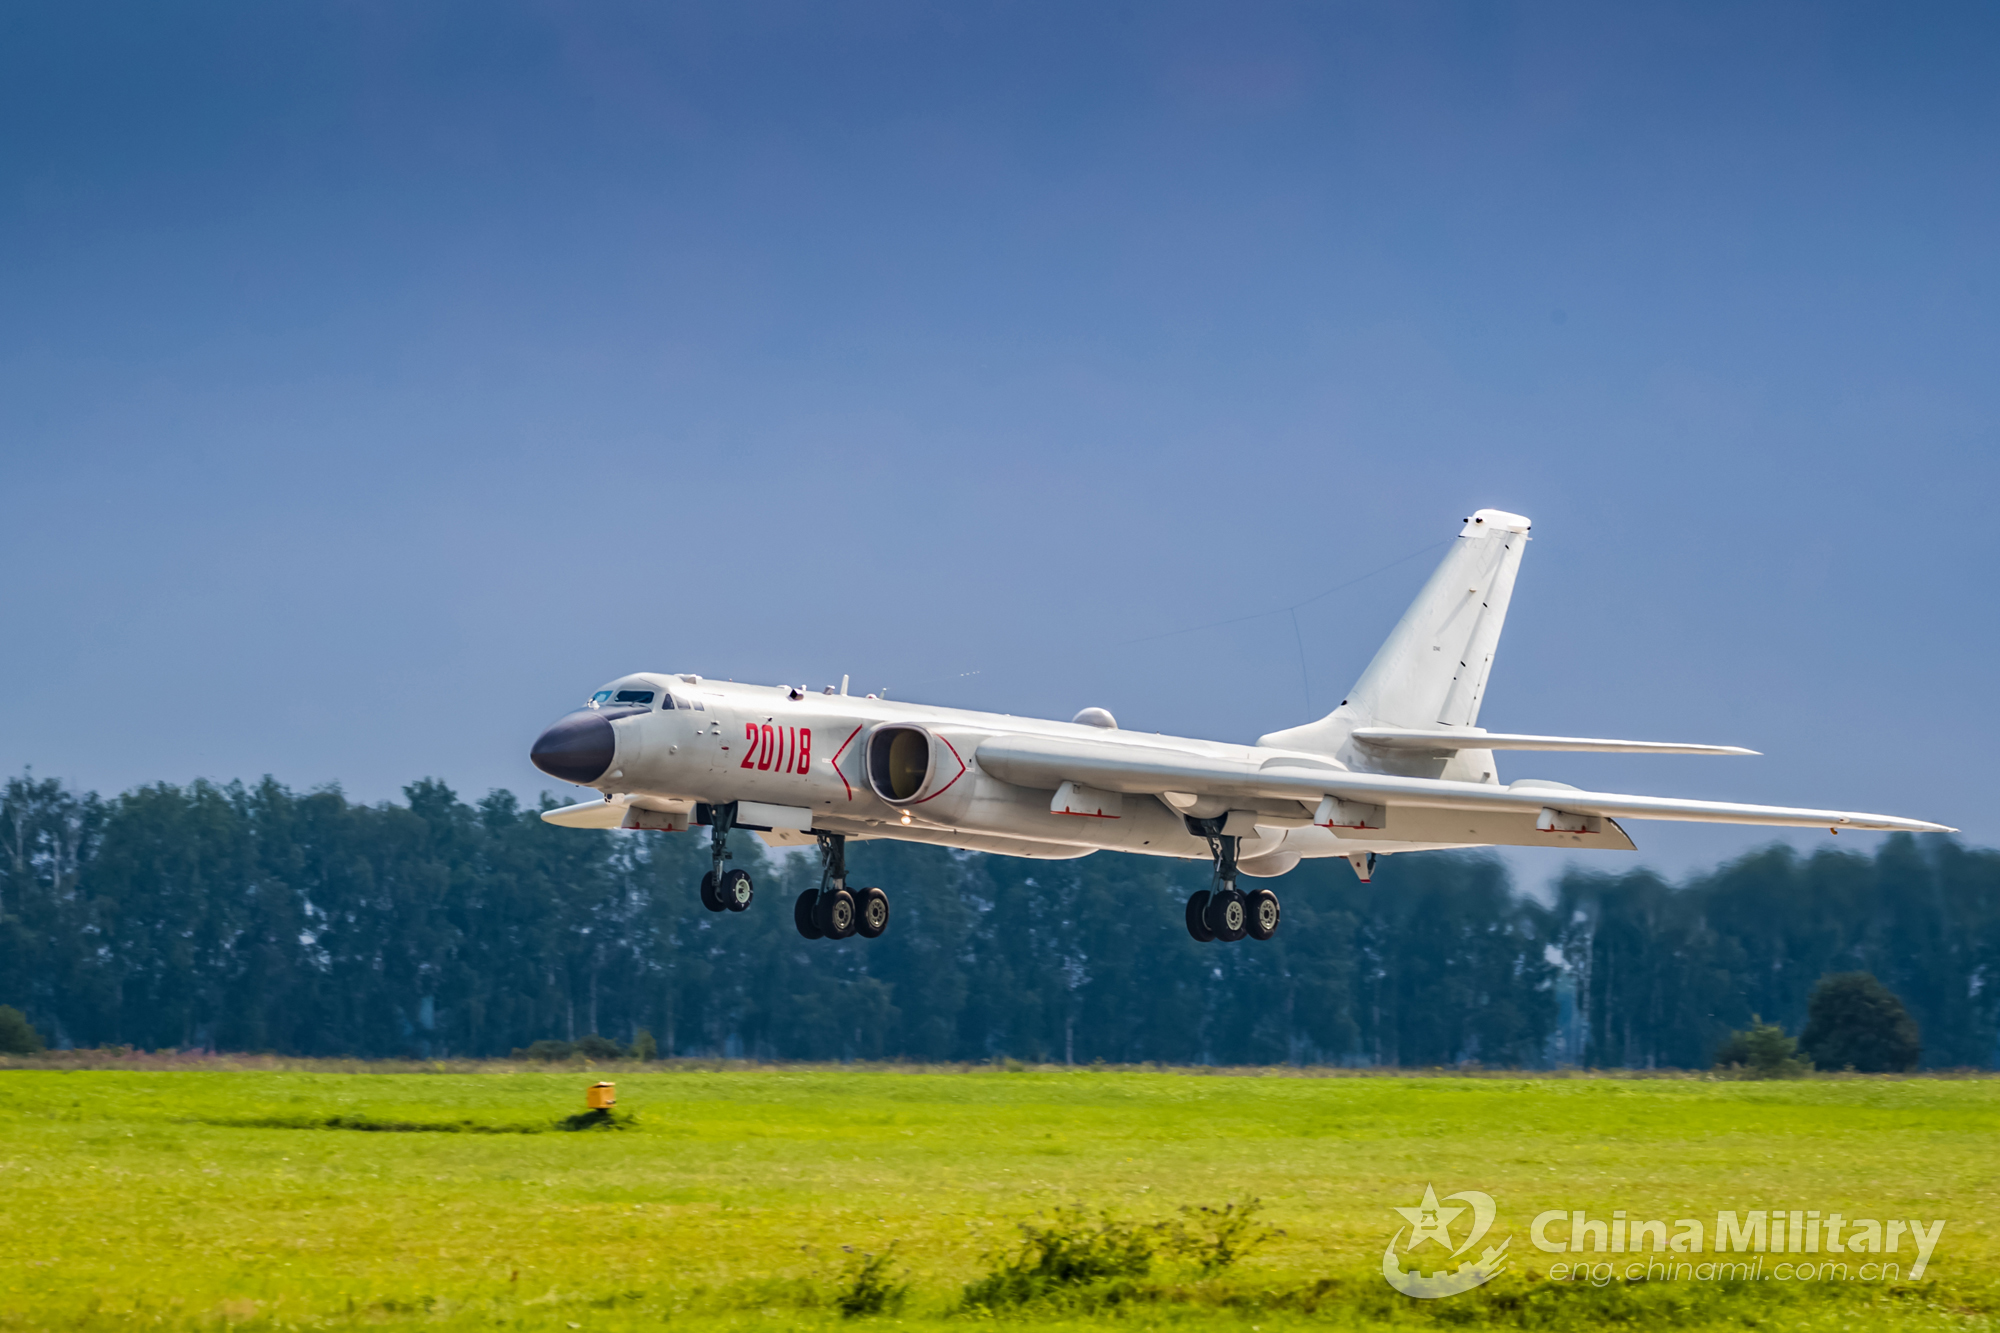 In pics: Chinese Air Force aircraft arrive in Russia for